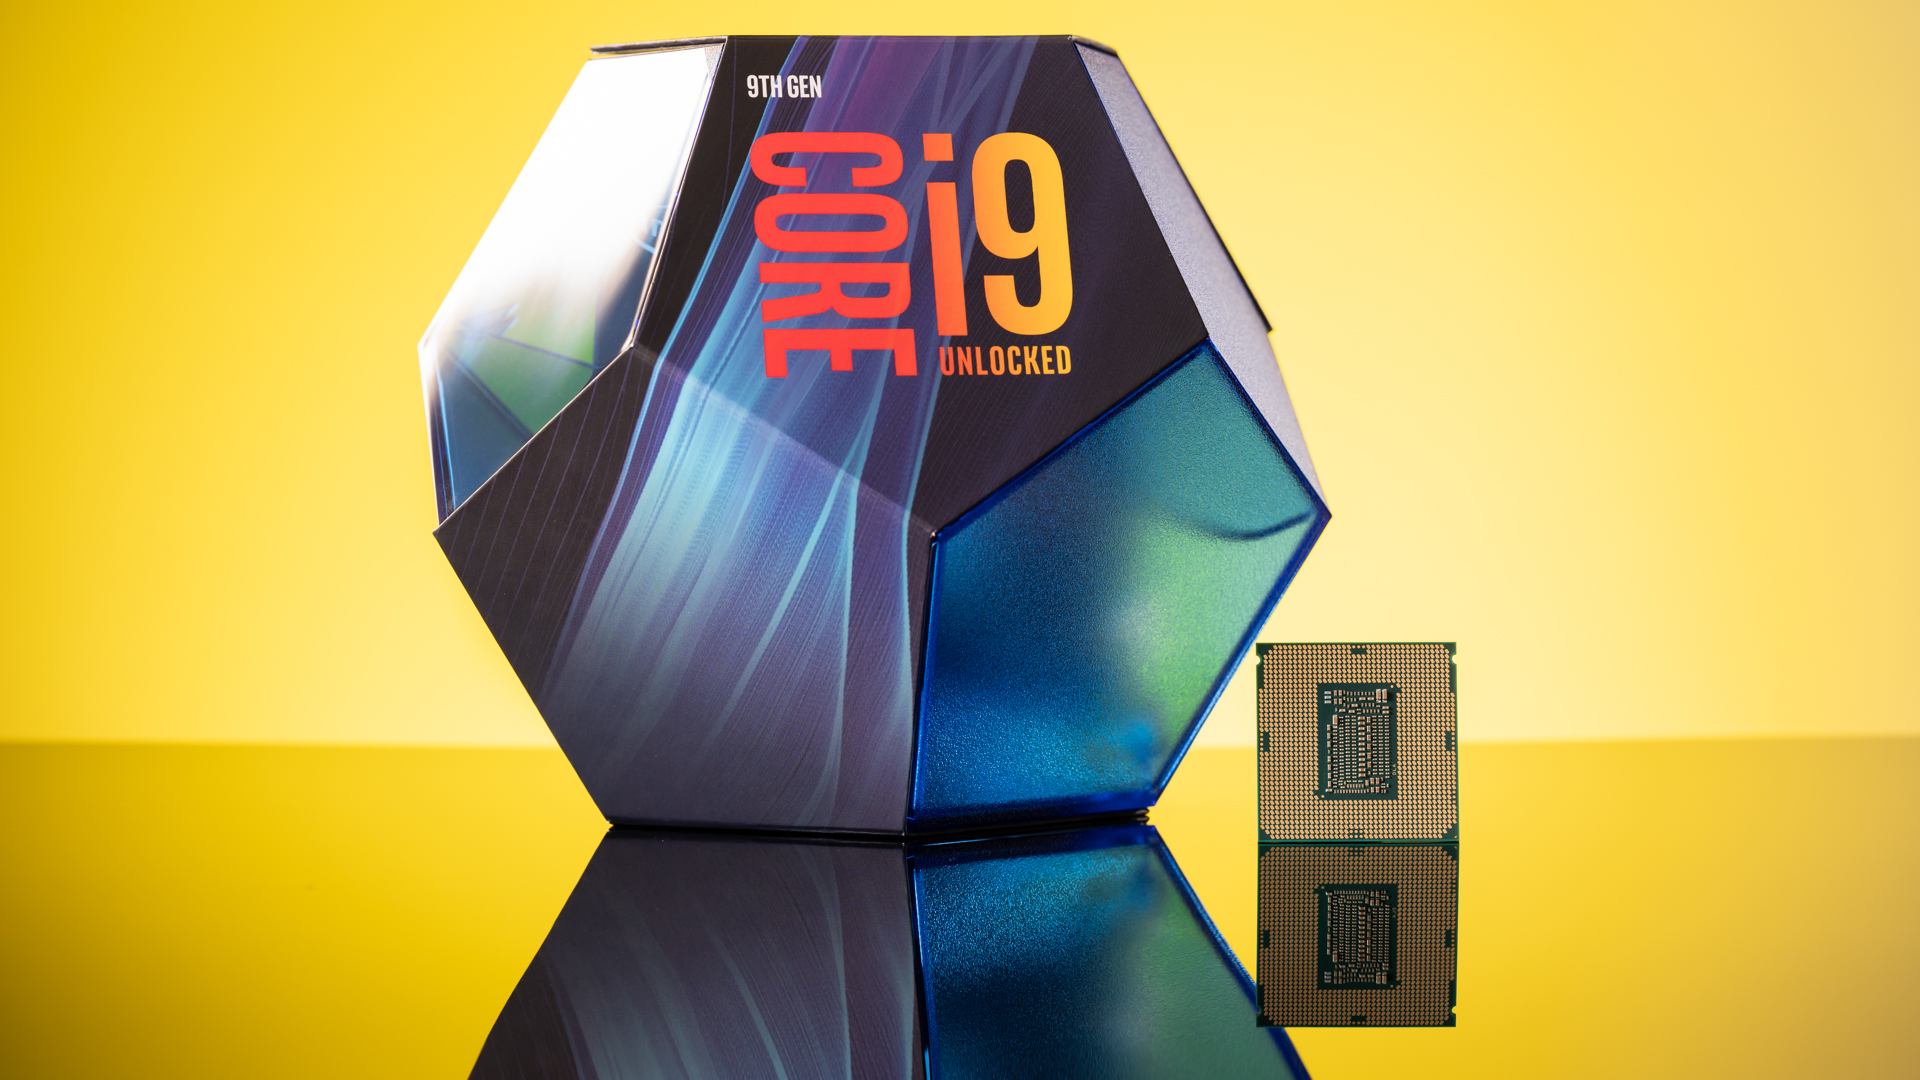 Z390 & 9th Gen CPUs: A step by step, in depth overclocking